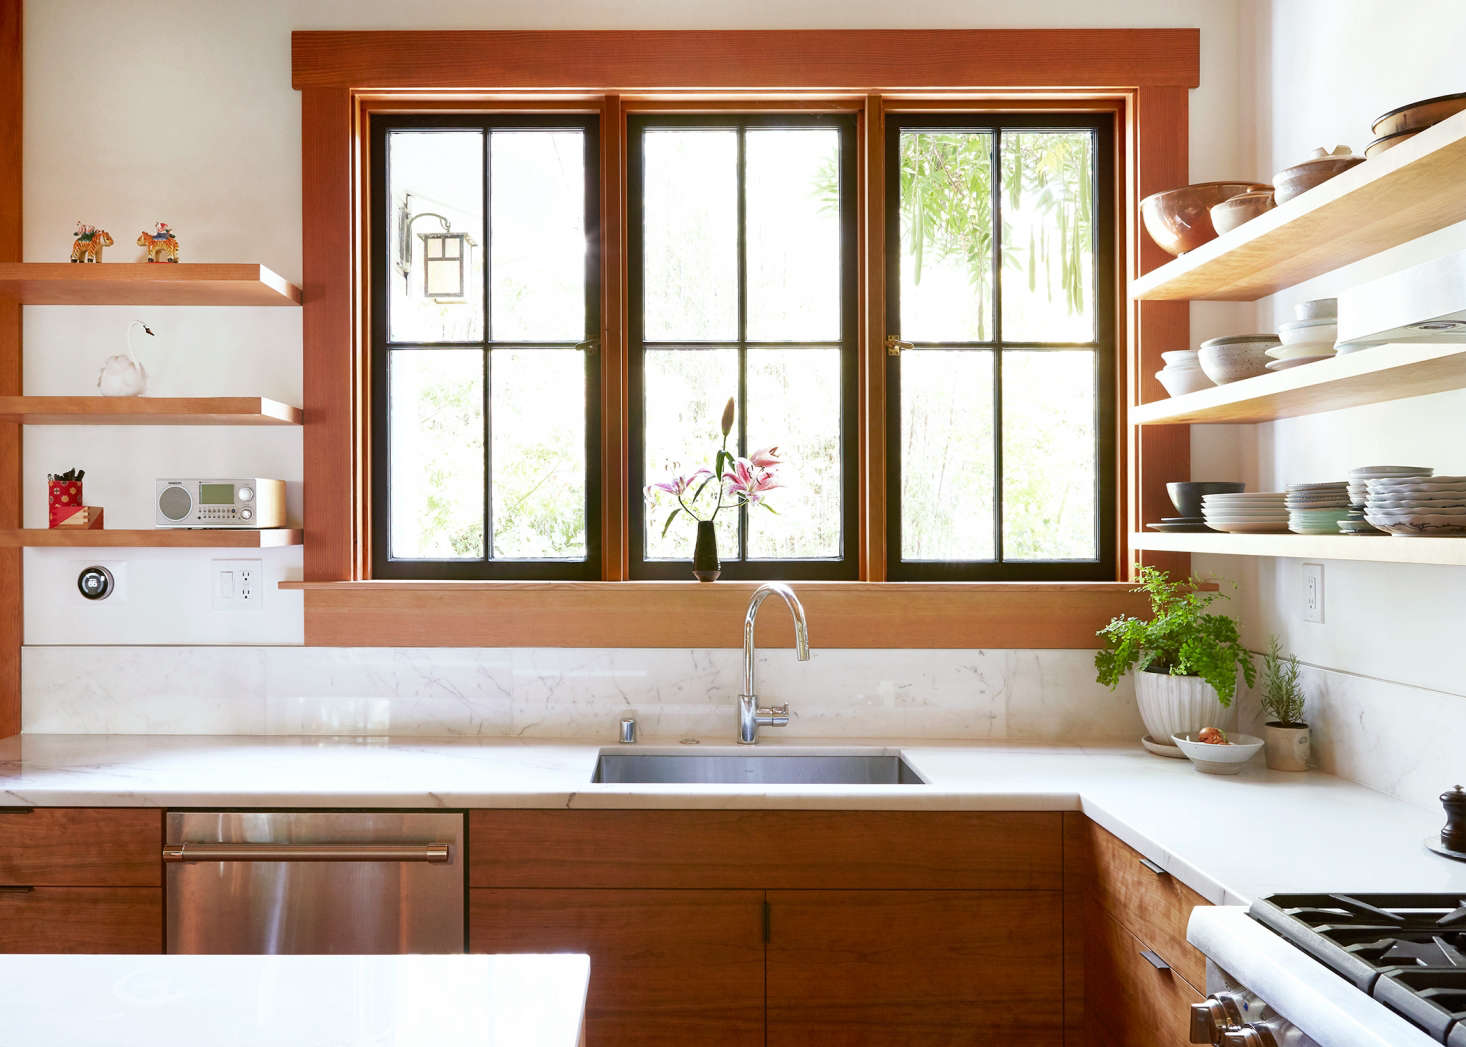 Remodeling 101: What to Know About Choosing the Right Size Kitchen on 6 foot kitchen islands, 6 foot kitchen rugs, 6 foot bathtubs, 6 foot chairs, 6 foot shower, 6 foot kitchen cabinets, 6 foot bathroom vanity,